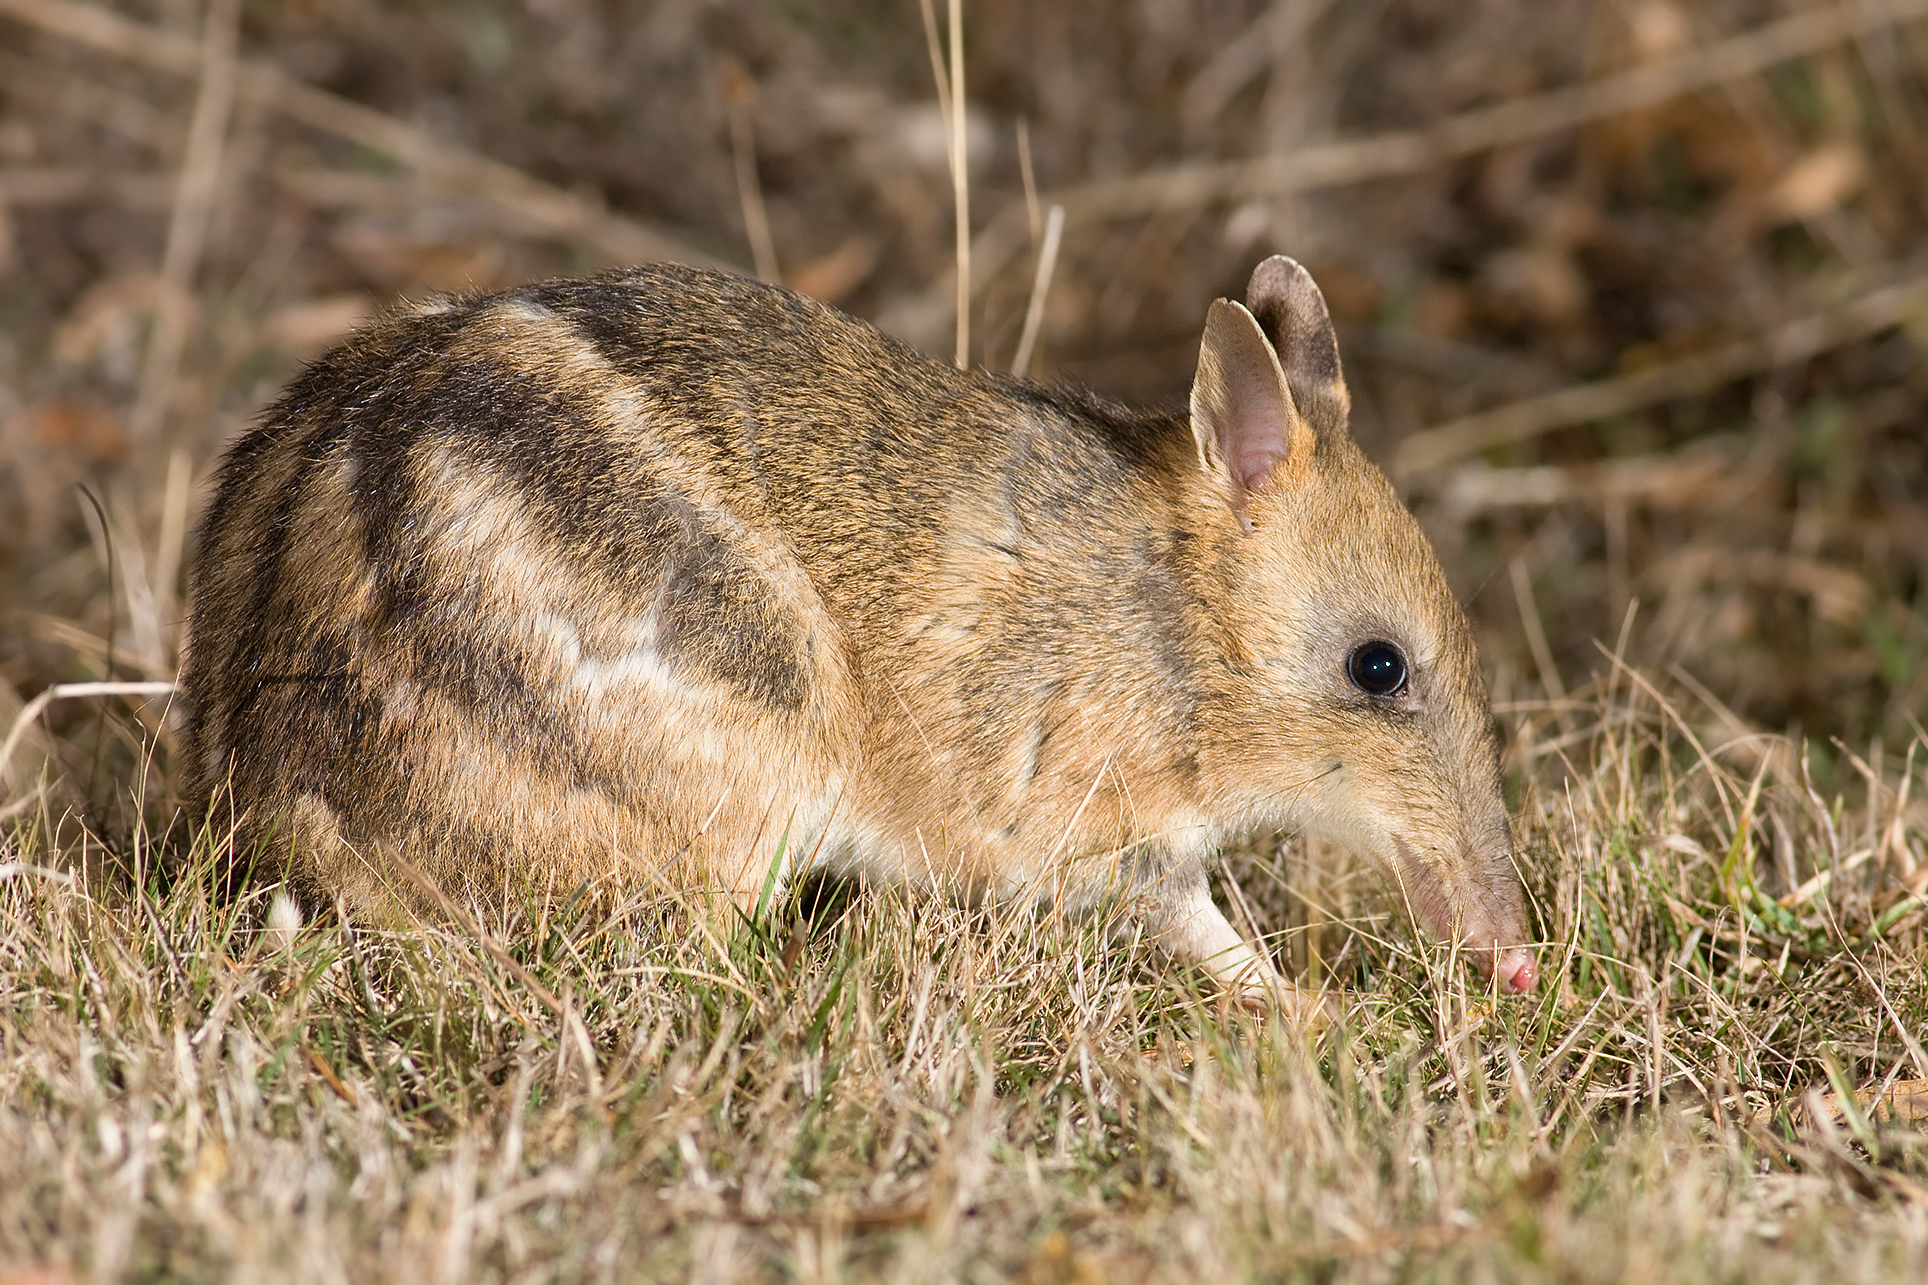 Long-nosed bandicoot 2